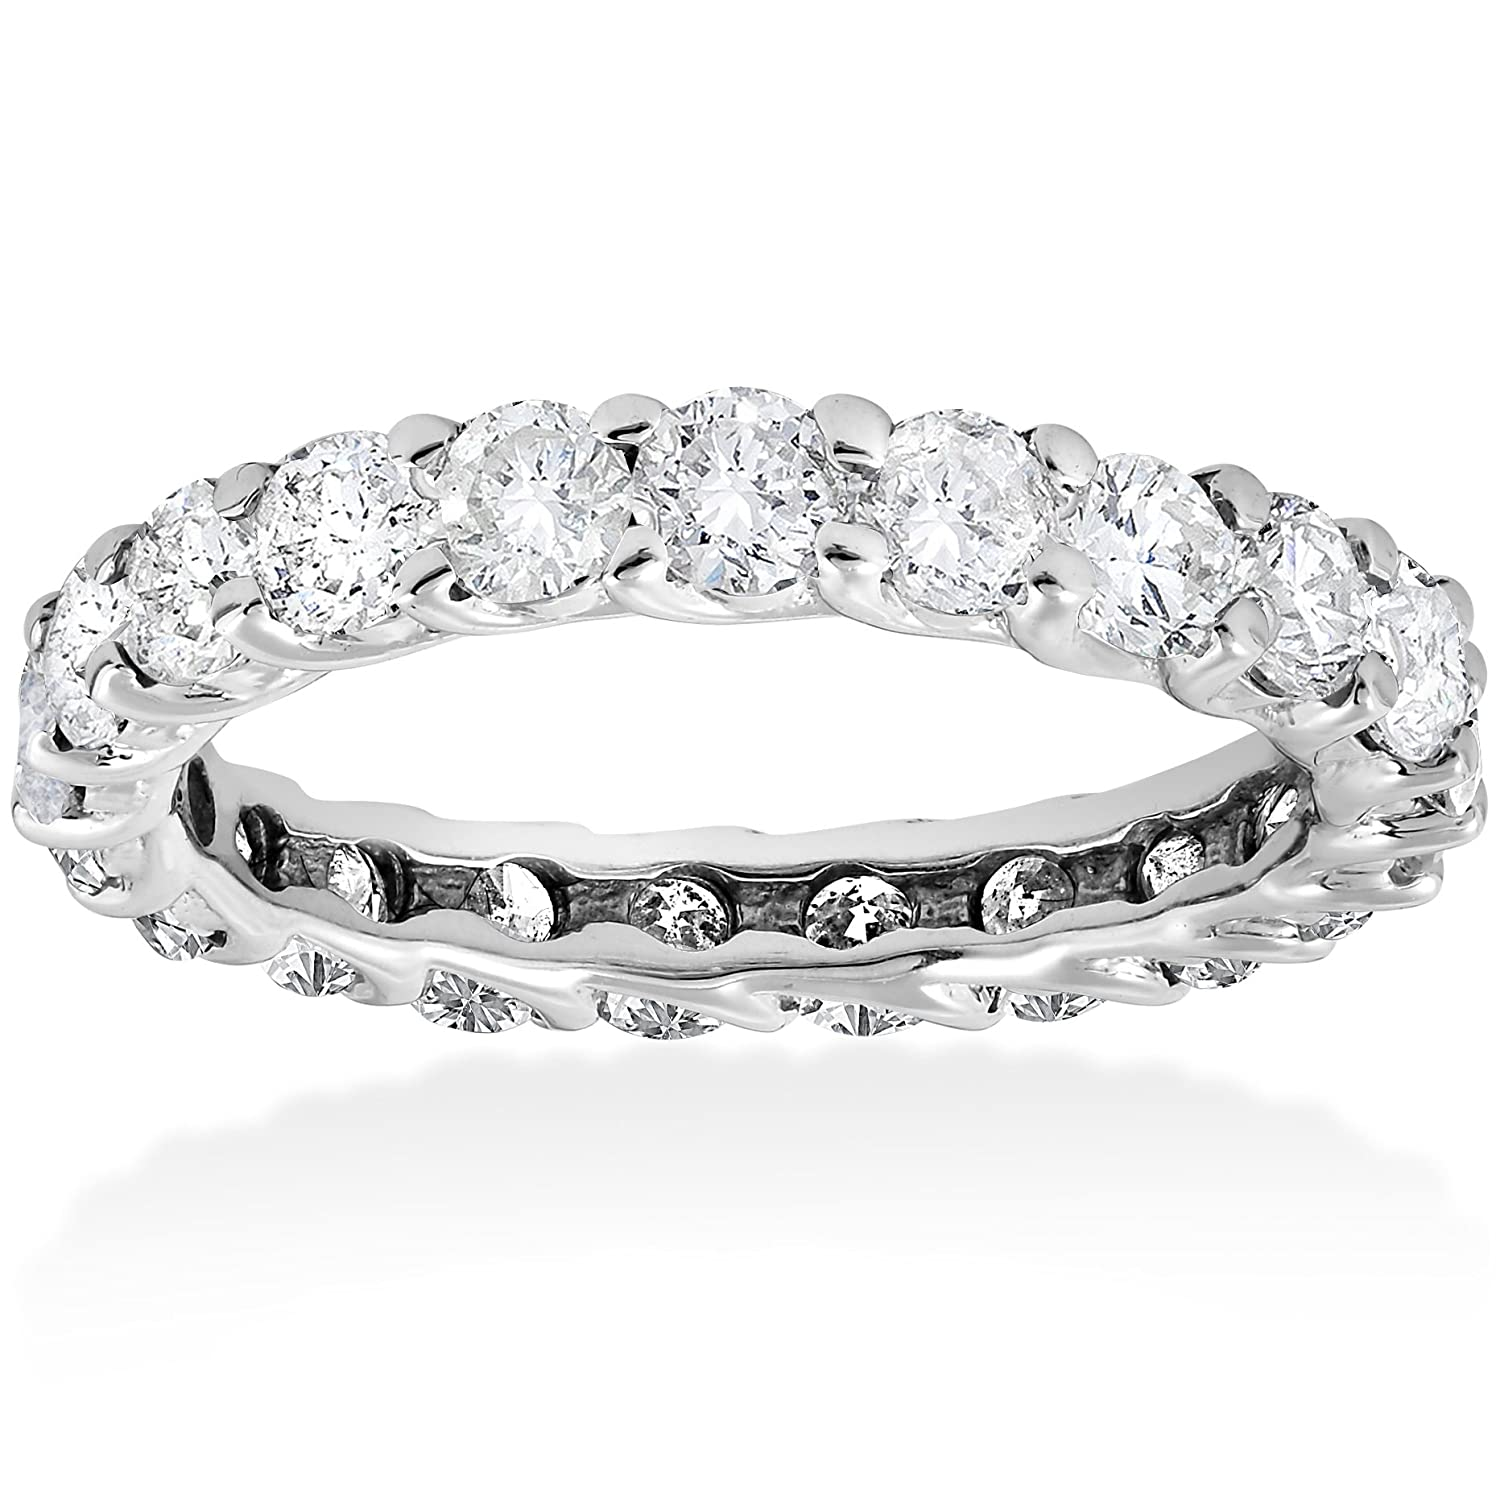 radiant set eternity diamond round the simulated all sterling classic prong with bands in mm tw veneer ring diamonds platinum band around silver electroplated